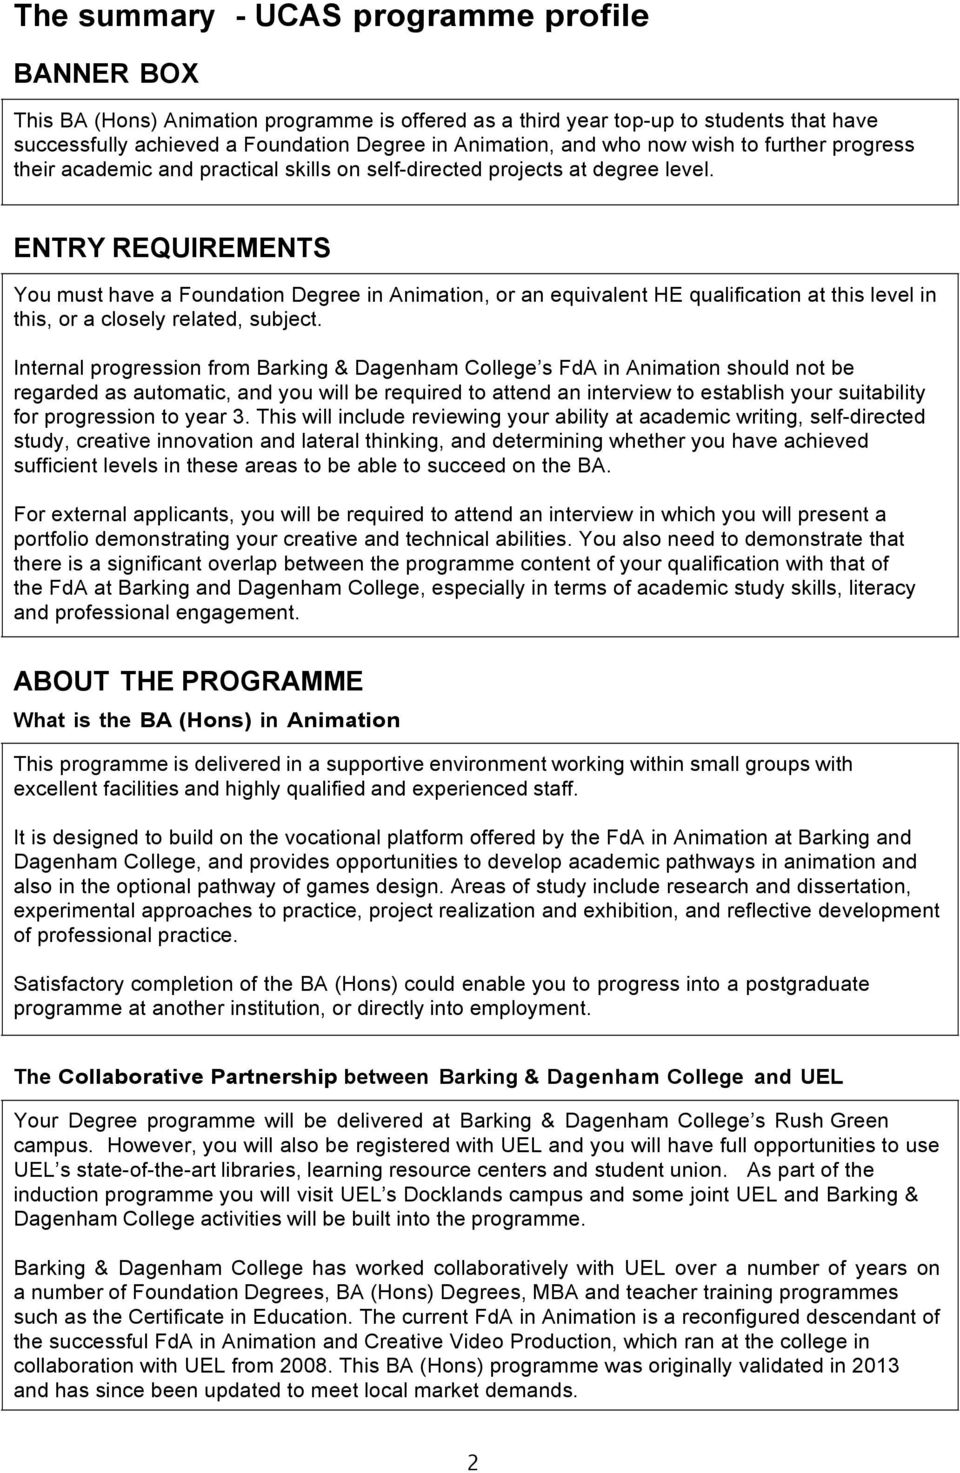 ENTRY REQUIREMENTS You must have a Foundation Degree in Animation, or an equivalent HE qualification at this level in this, or a closely related, subject.